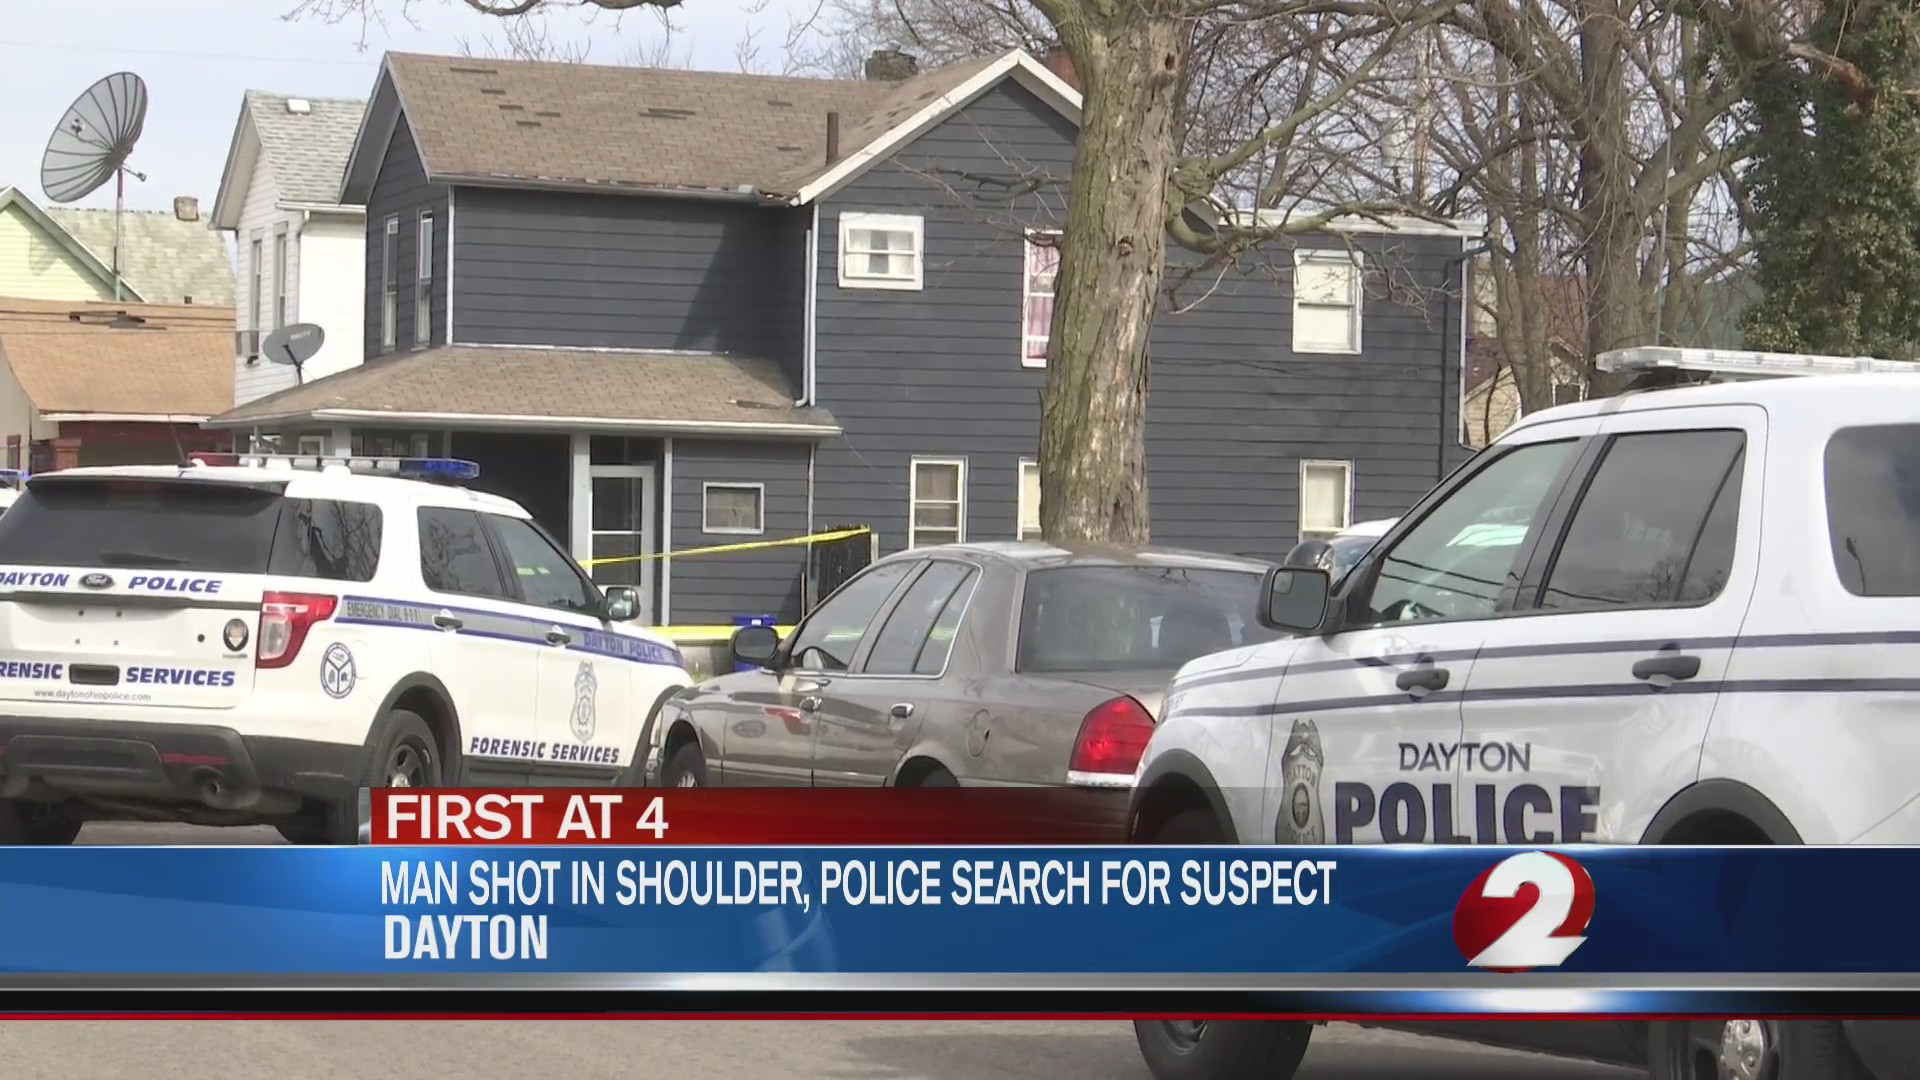 Man shot in shoulder, police search for suspect